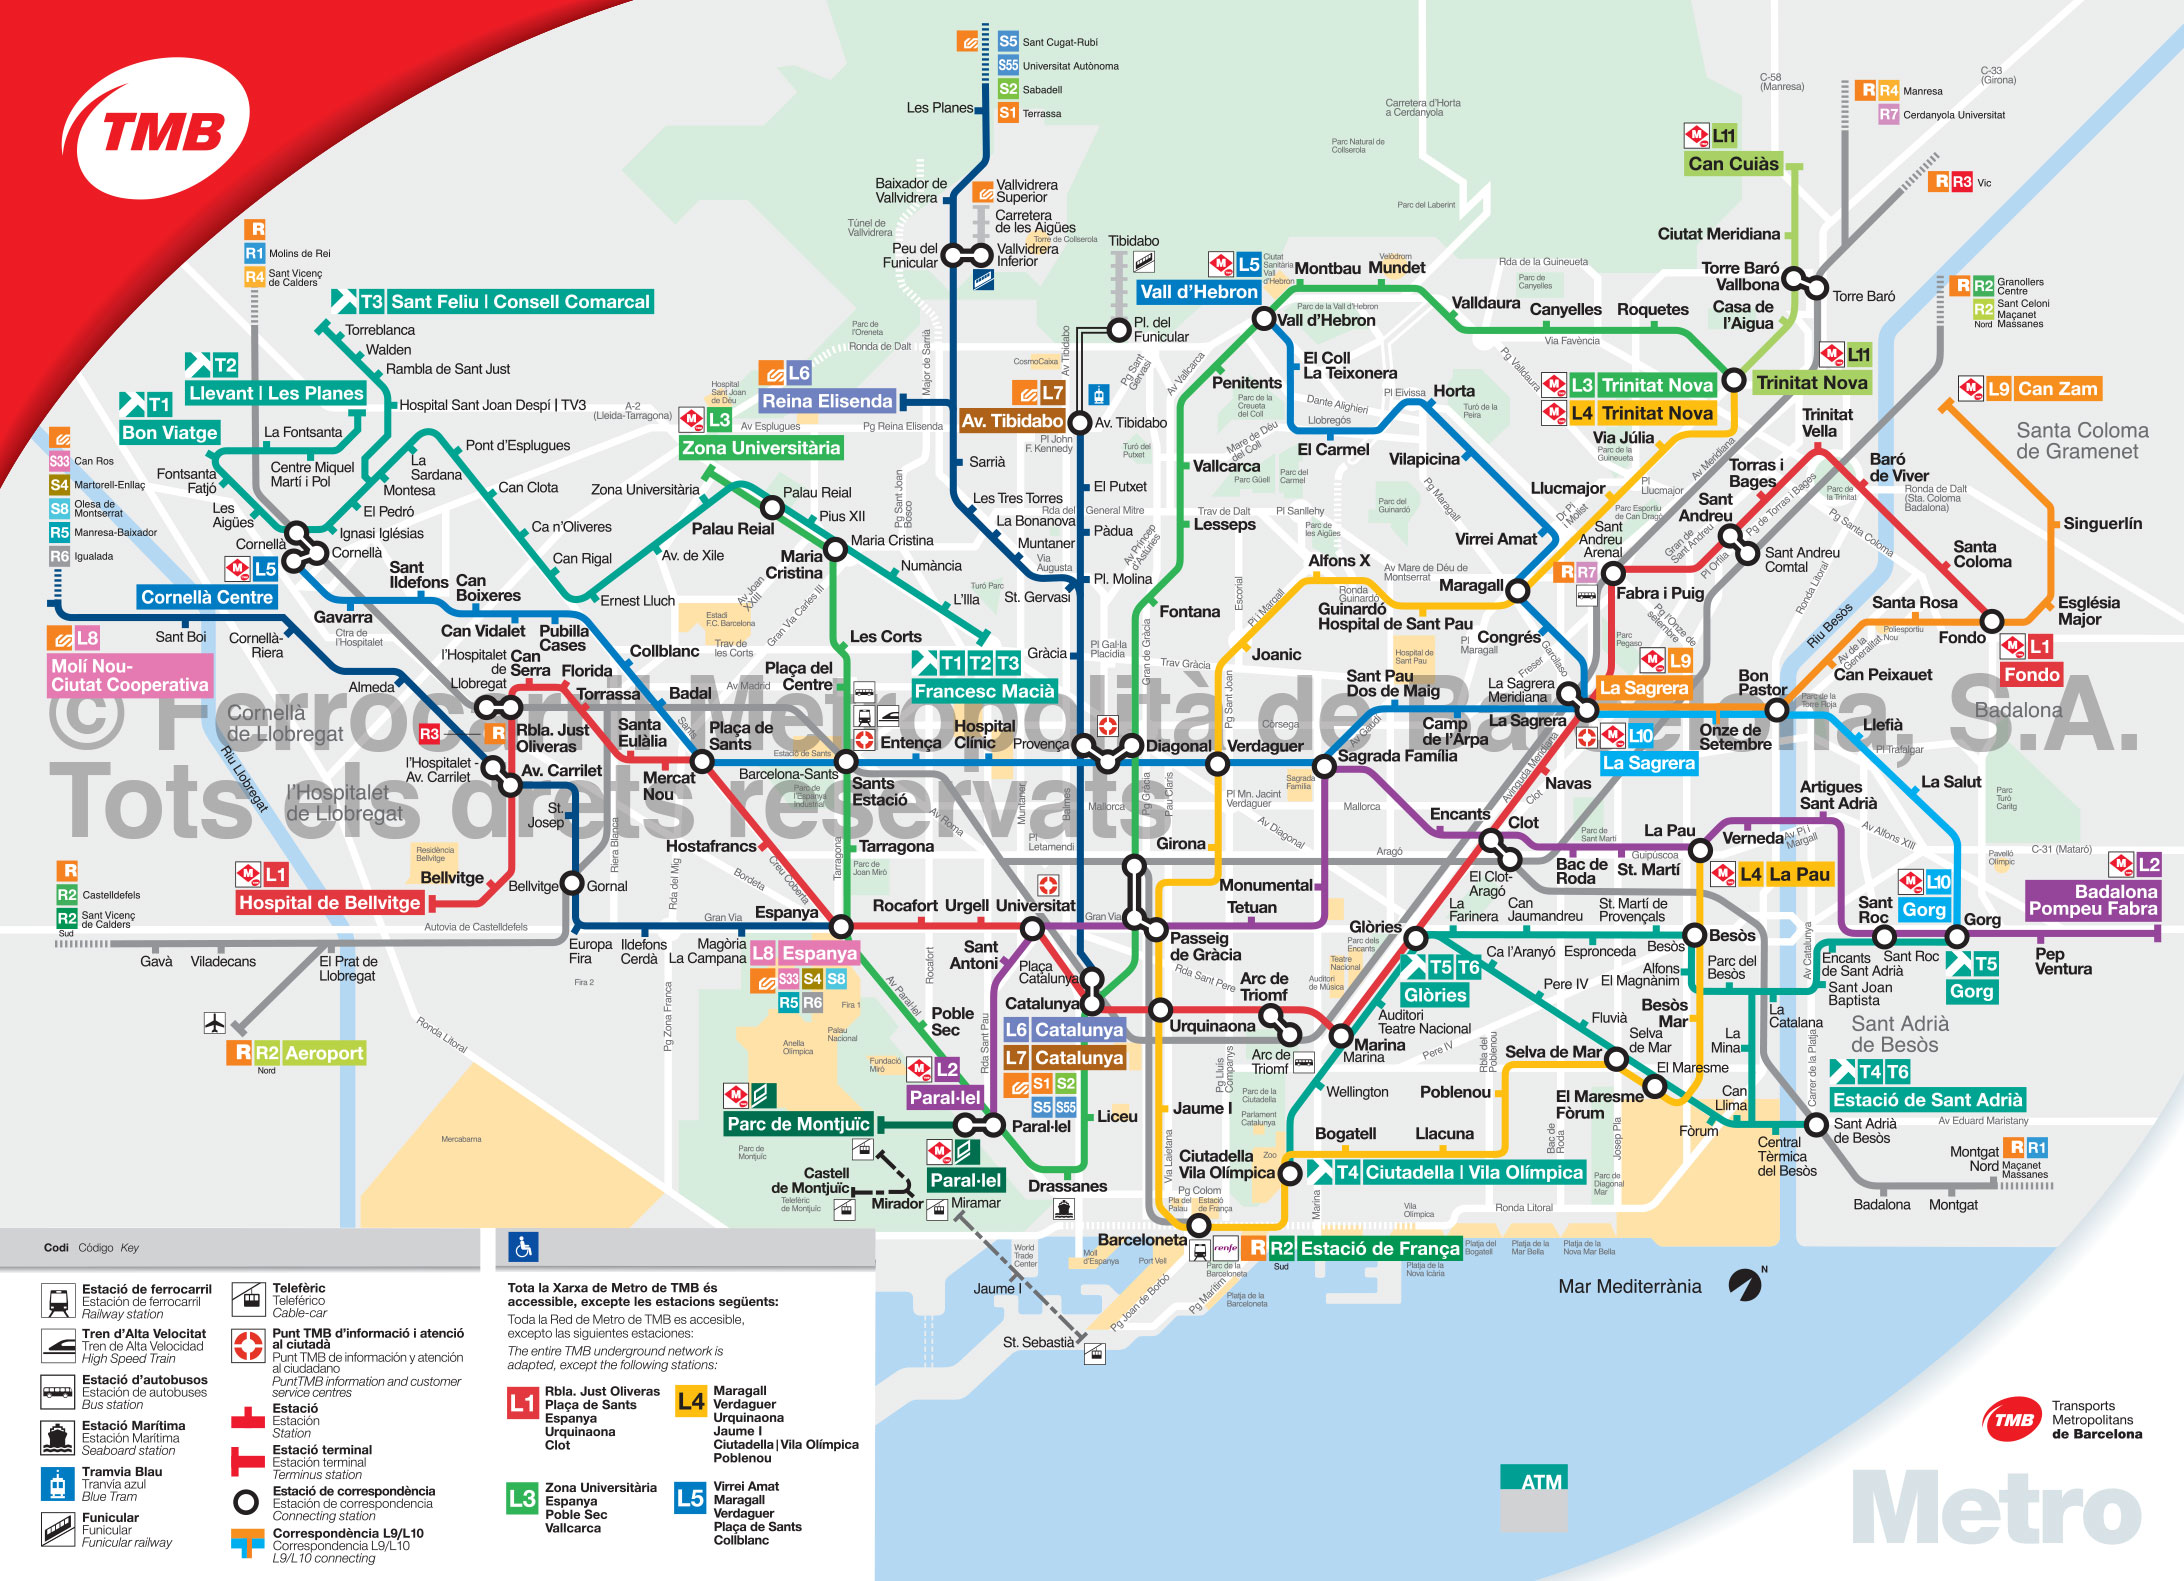 Subway Map Of Barcelona Spain.Map Of Barcelona Subway Underground Tube Metro Stations Lines